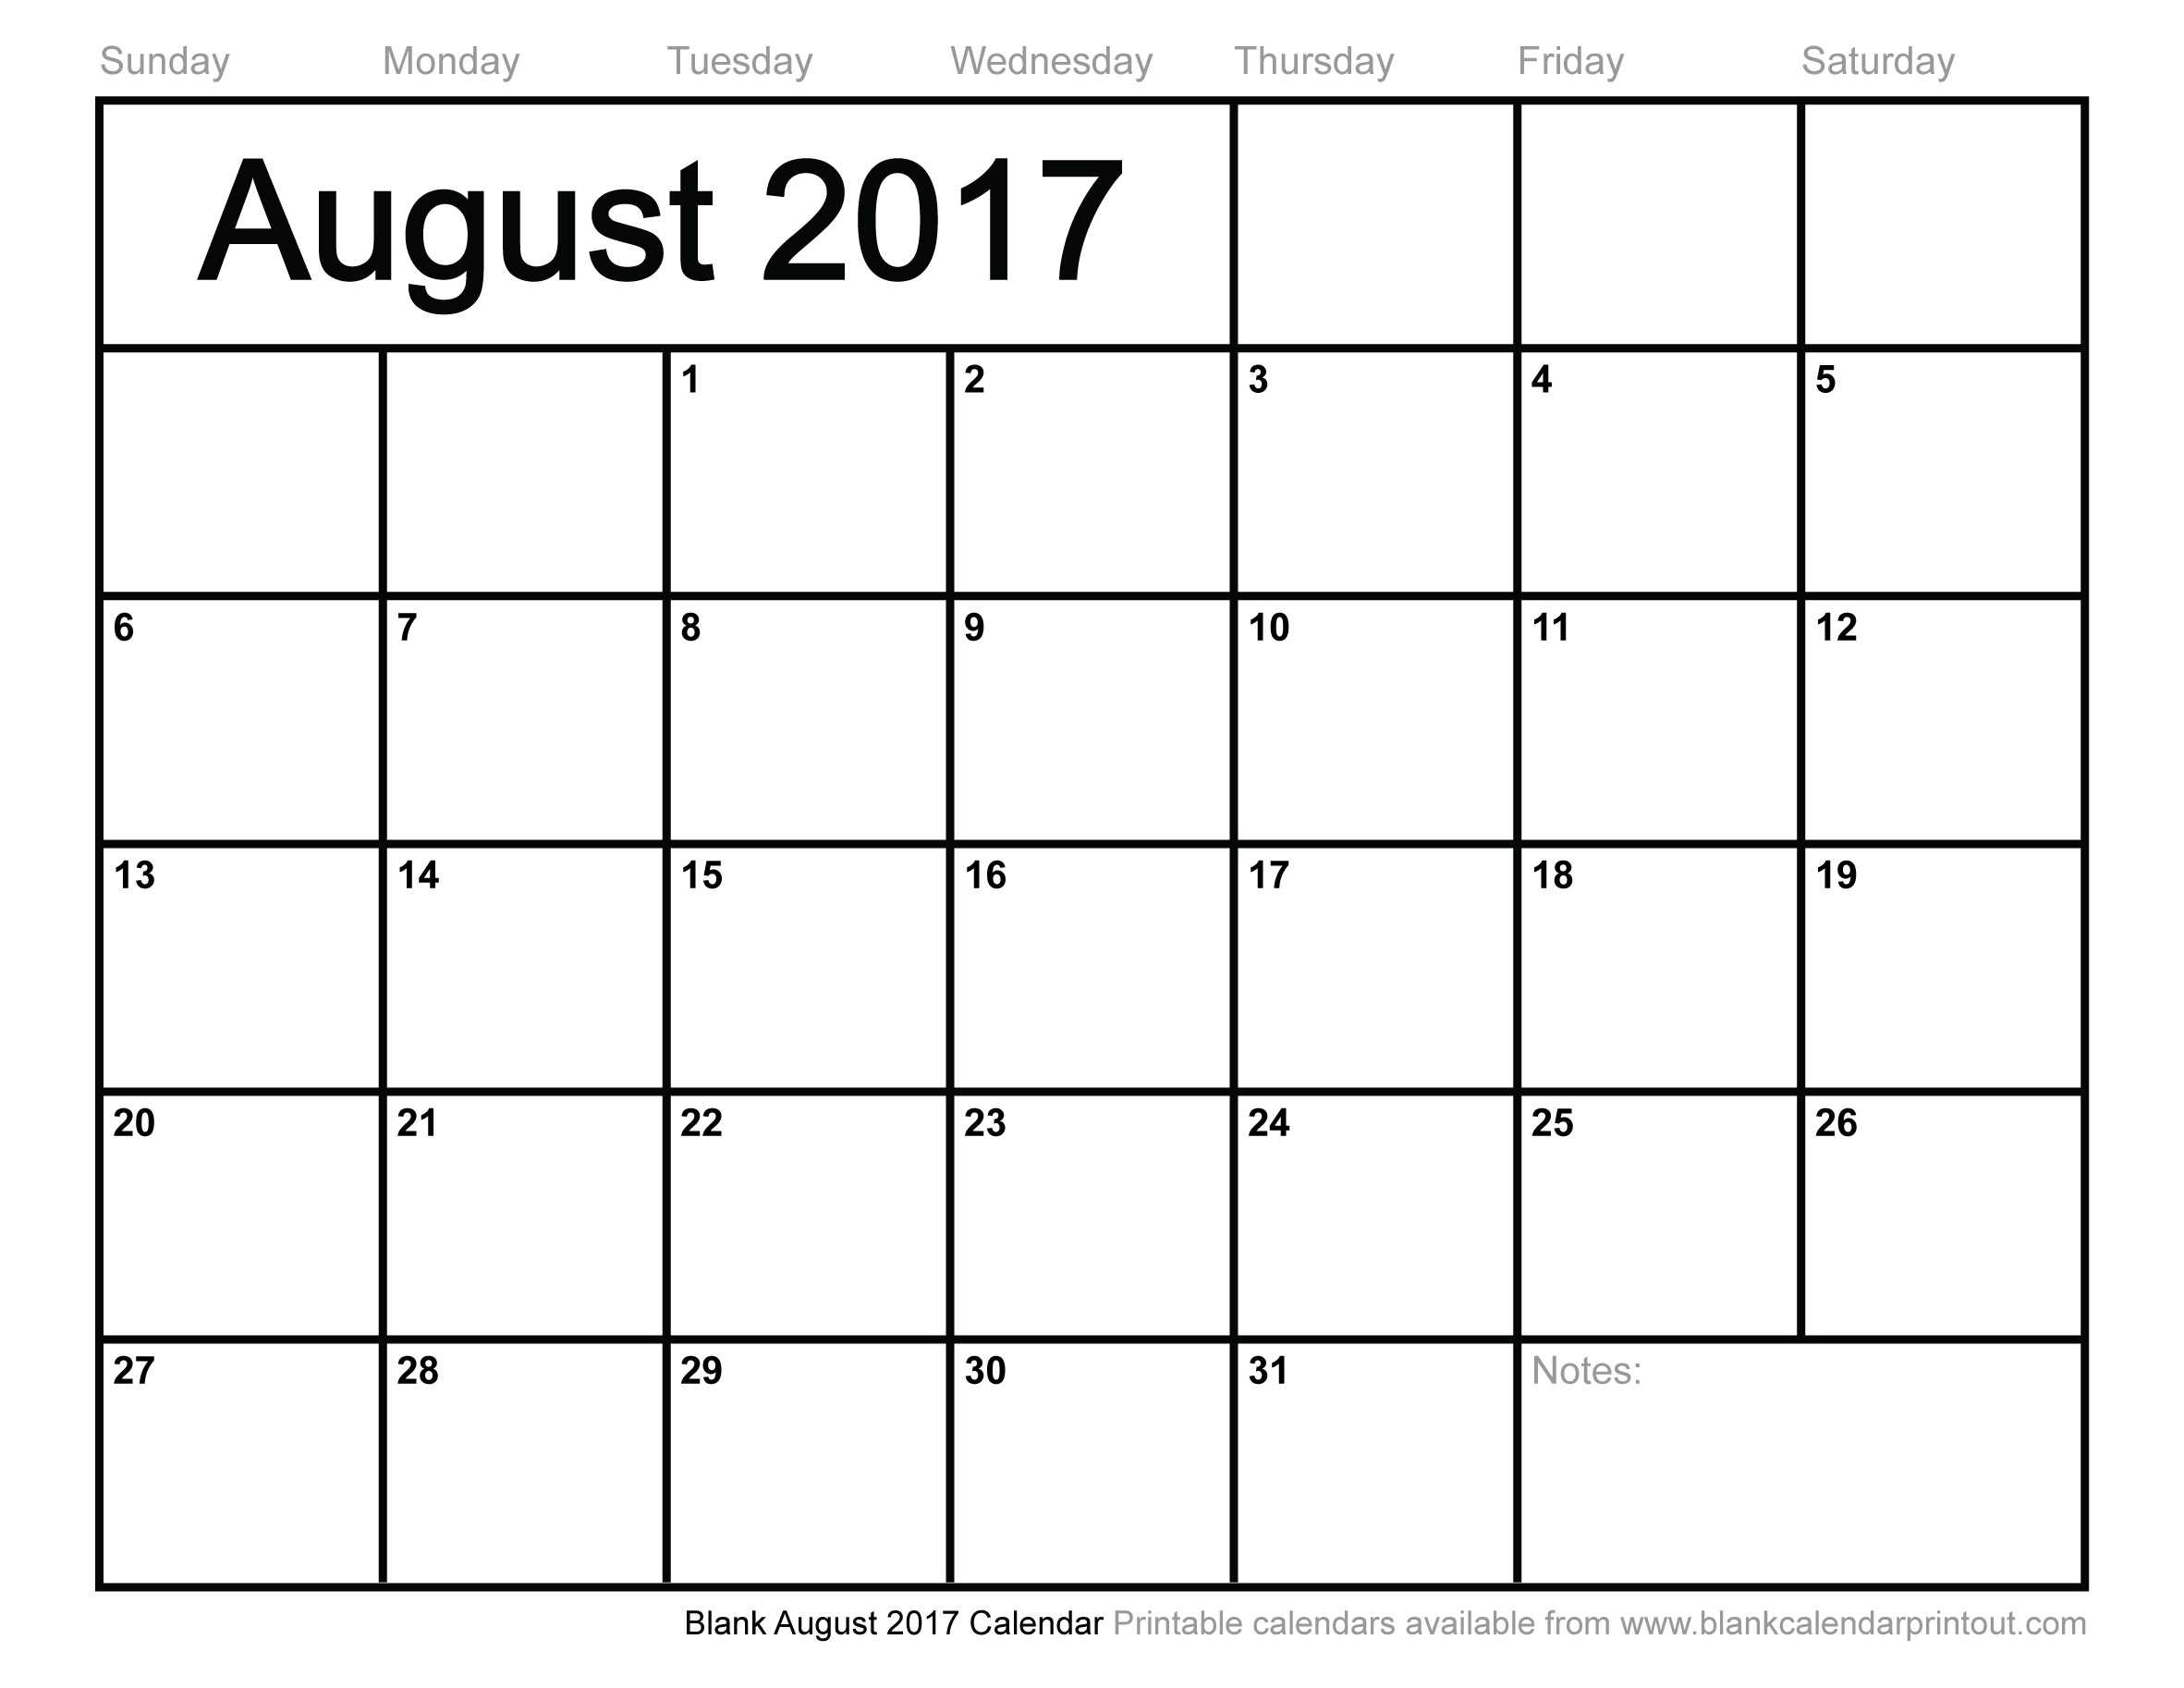 Blank August 2017 Calendar To Print  August Printable Calendar By Month